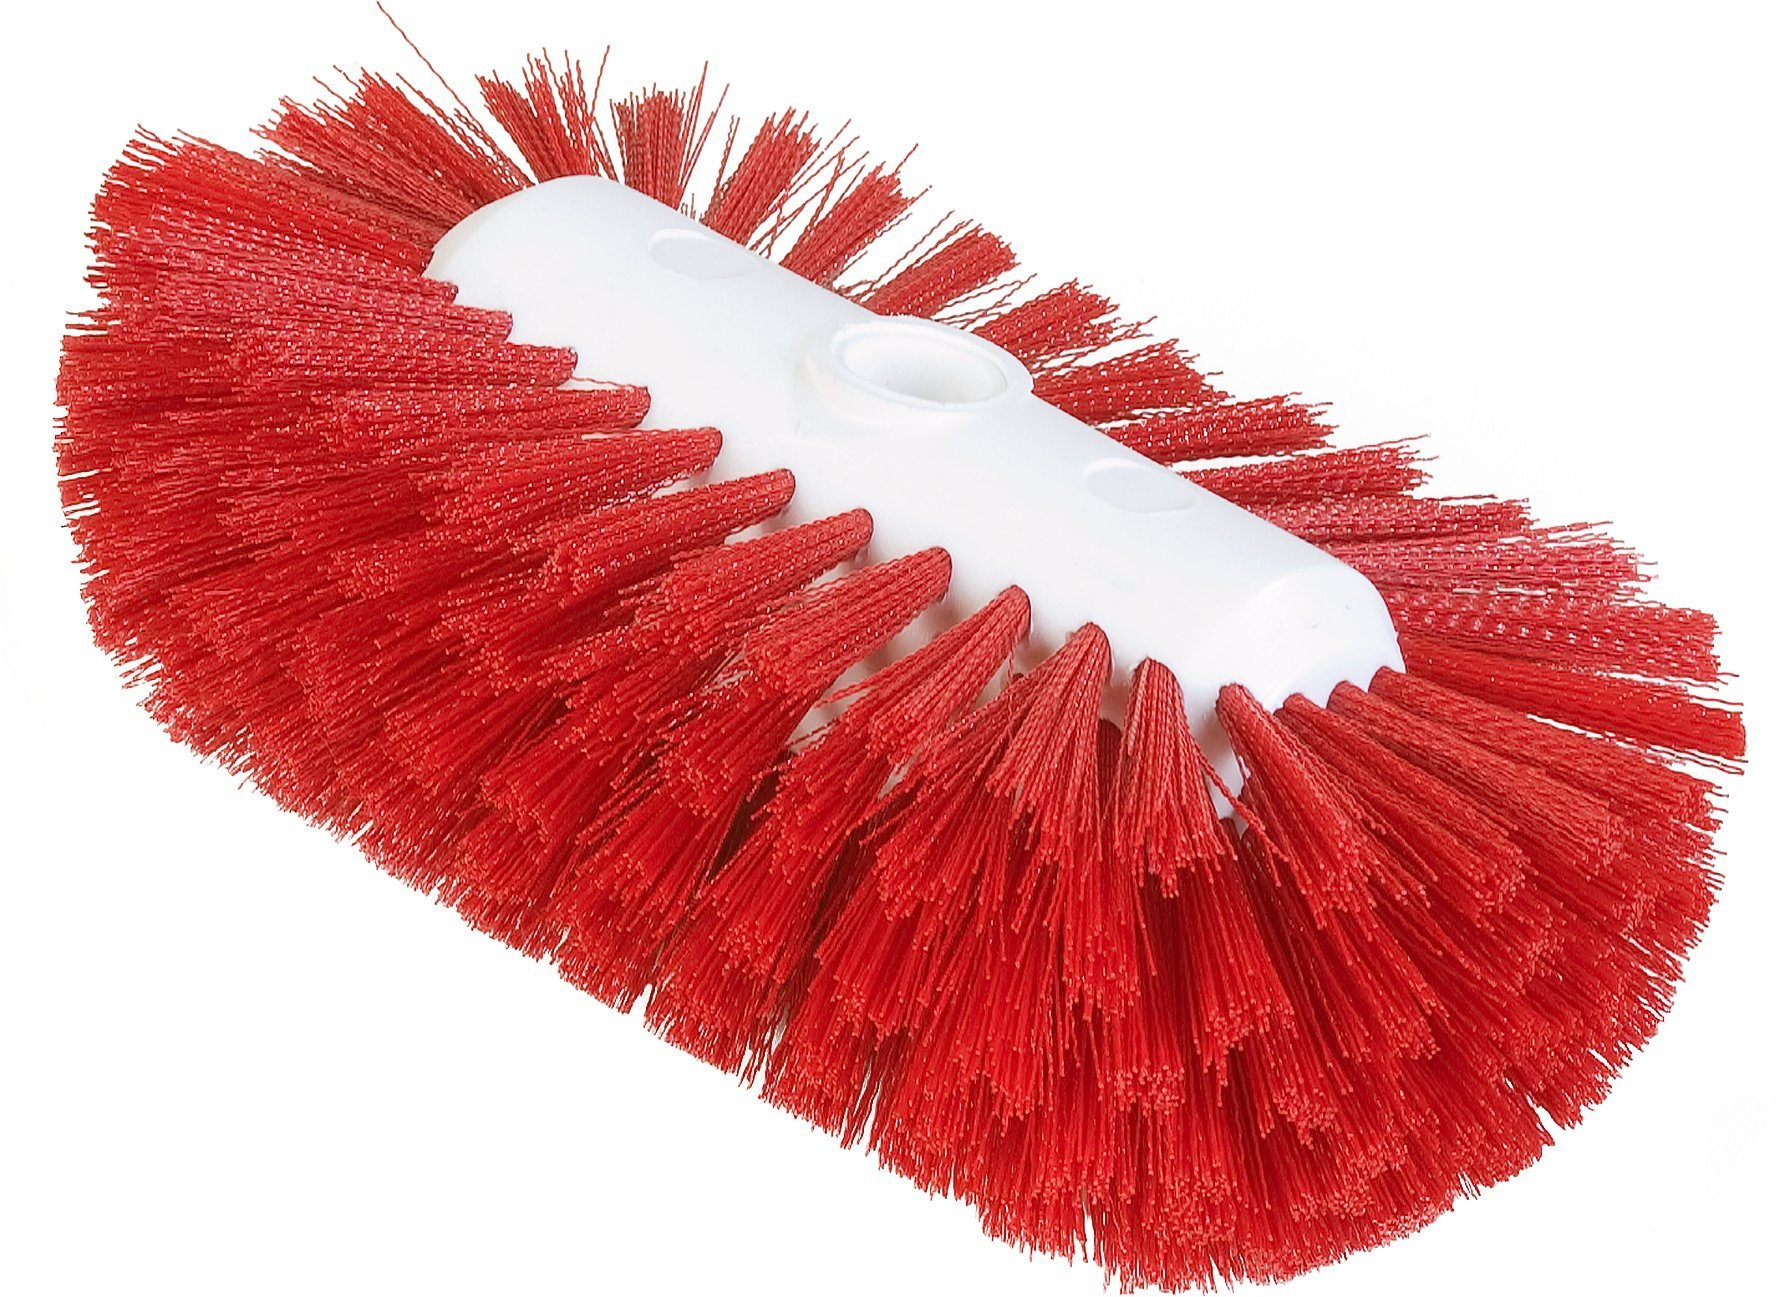 Carlisle 4004305 Sparta Spectrum Large Flare Head Tank and Kettle Brush, Polyester Bristles, 9'' Length x 5-1/2'' Width, Red by Carlisle